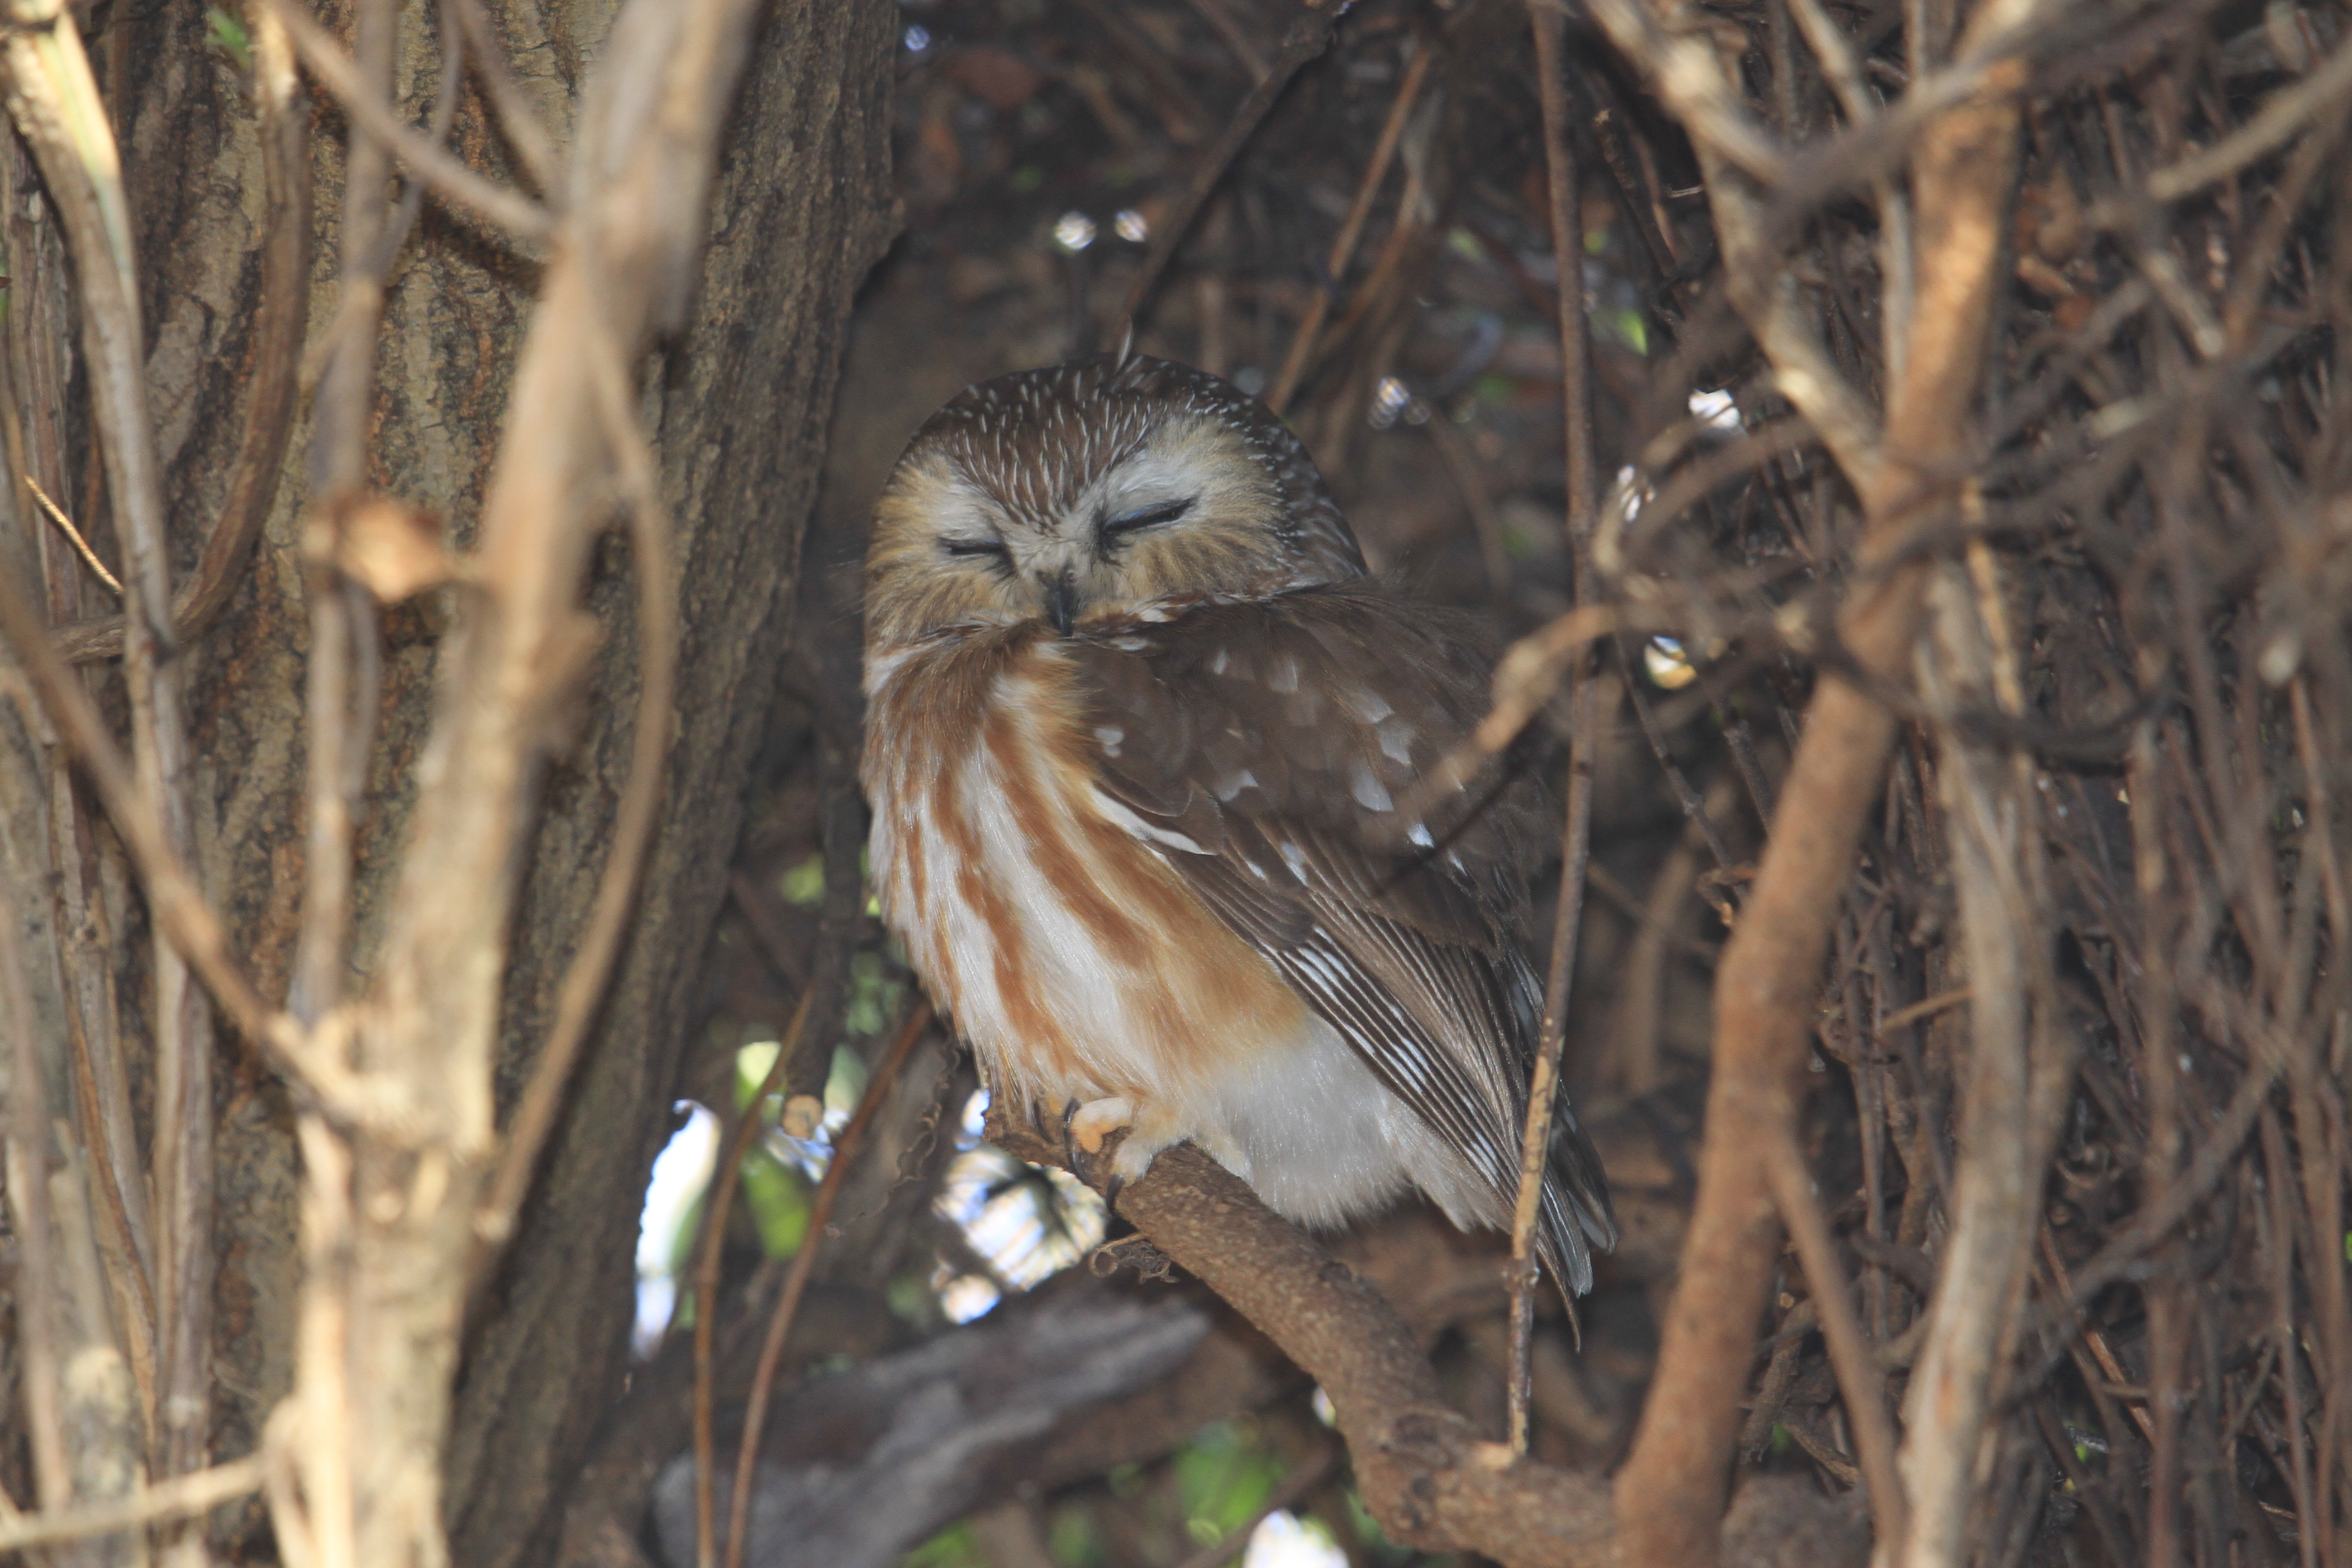 Northern Saw-whet Owl roosting in shrub.  Photo by Adrian Binns.